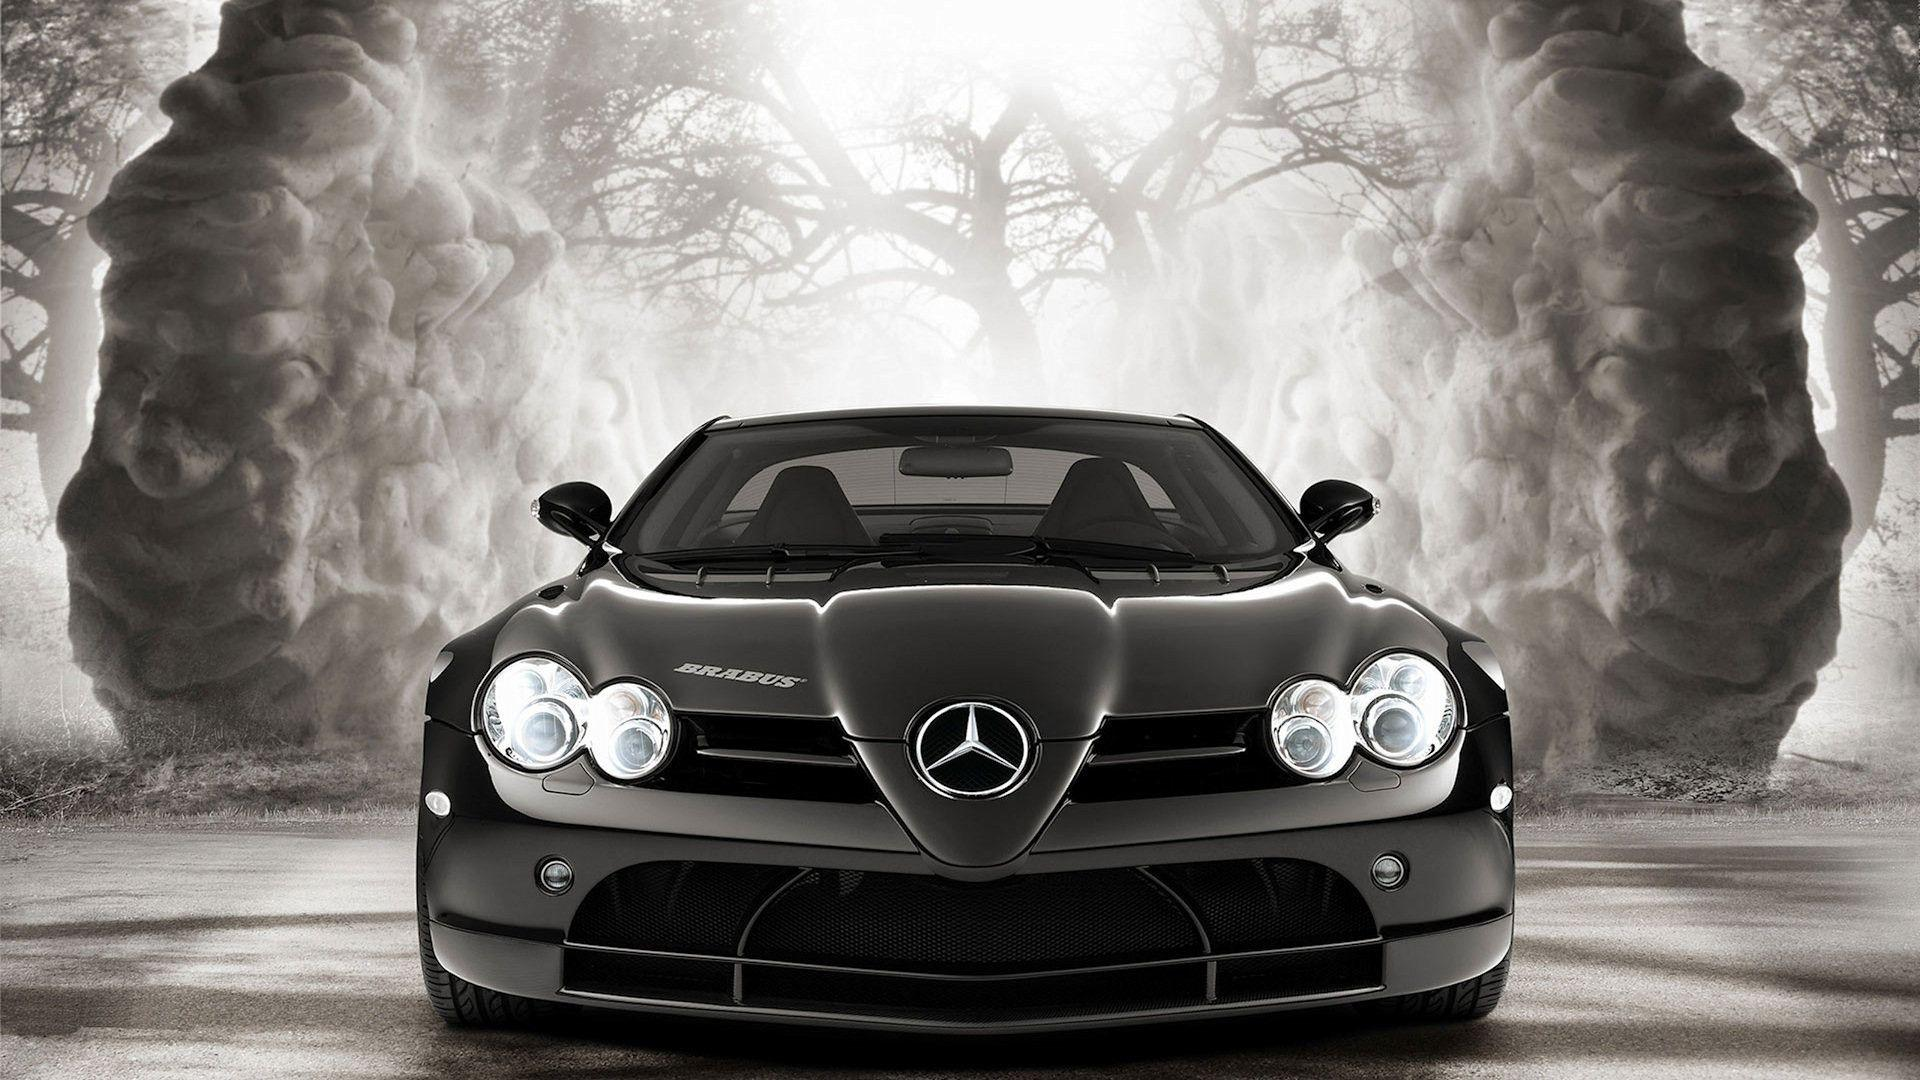 Car wallpapers 1920x1080 wallpaper cave for Luxury 3d wallpaper